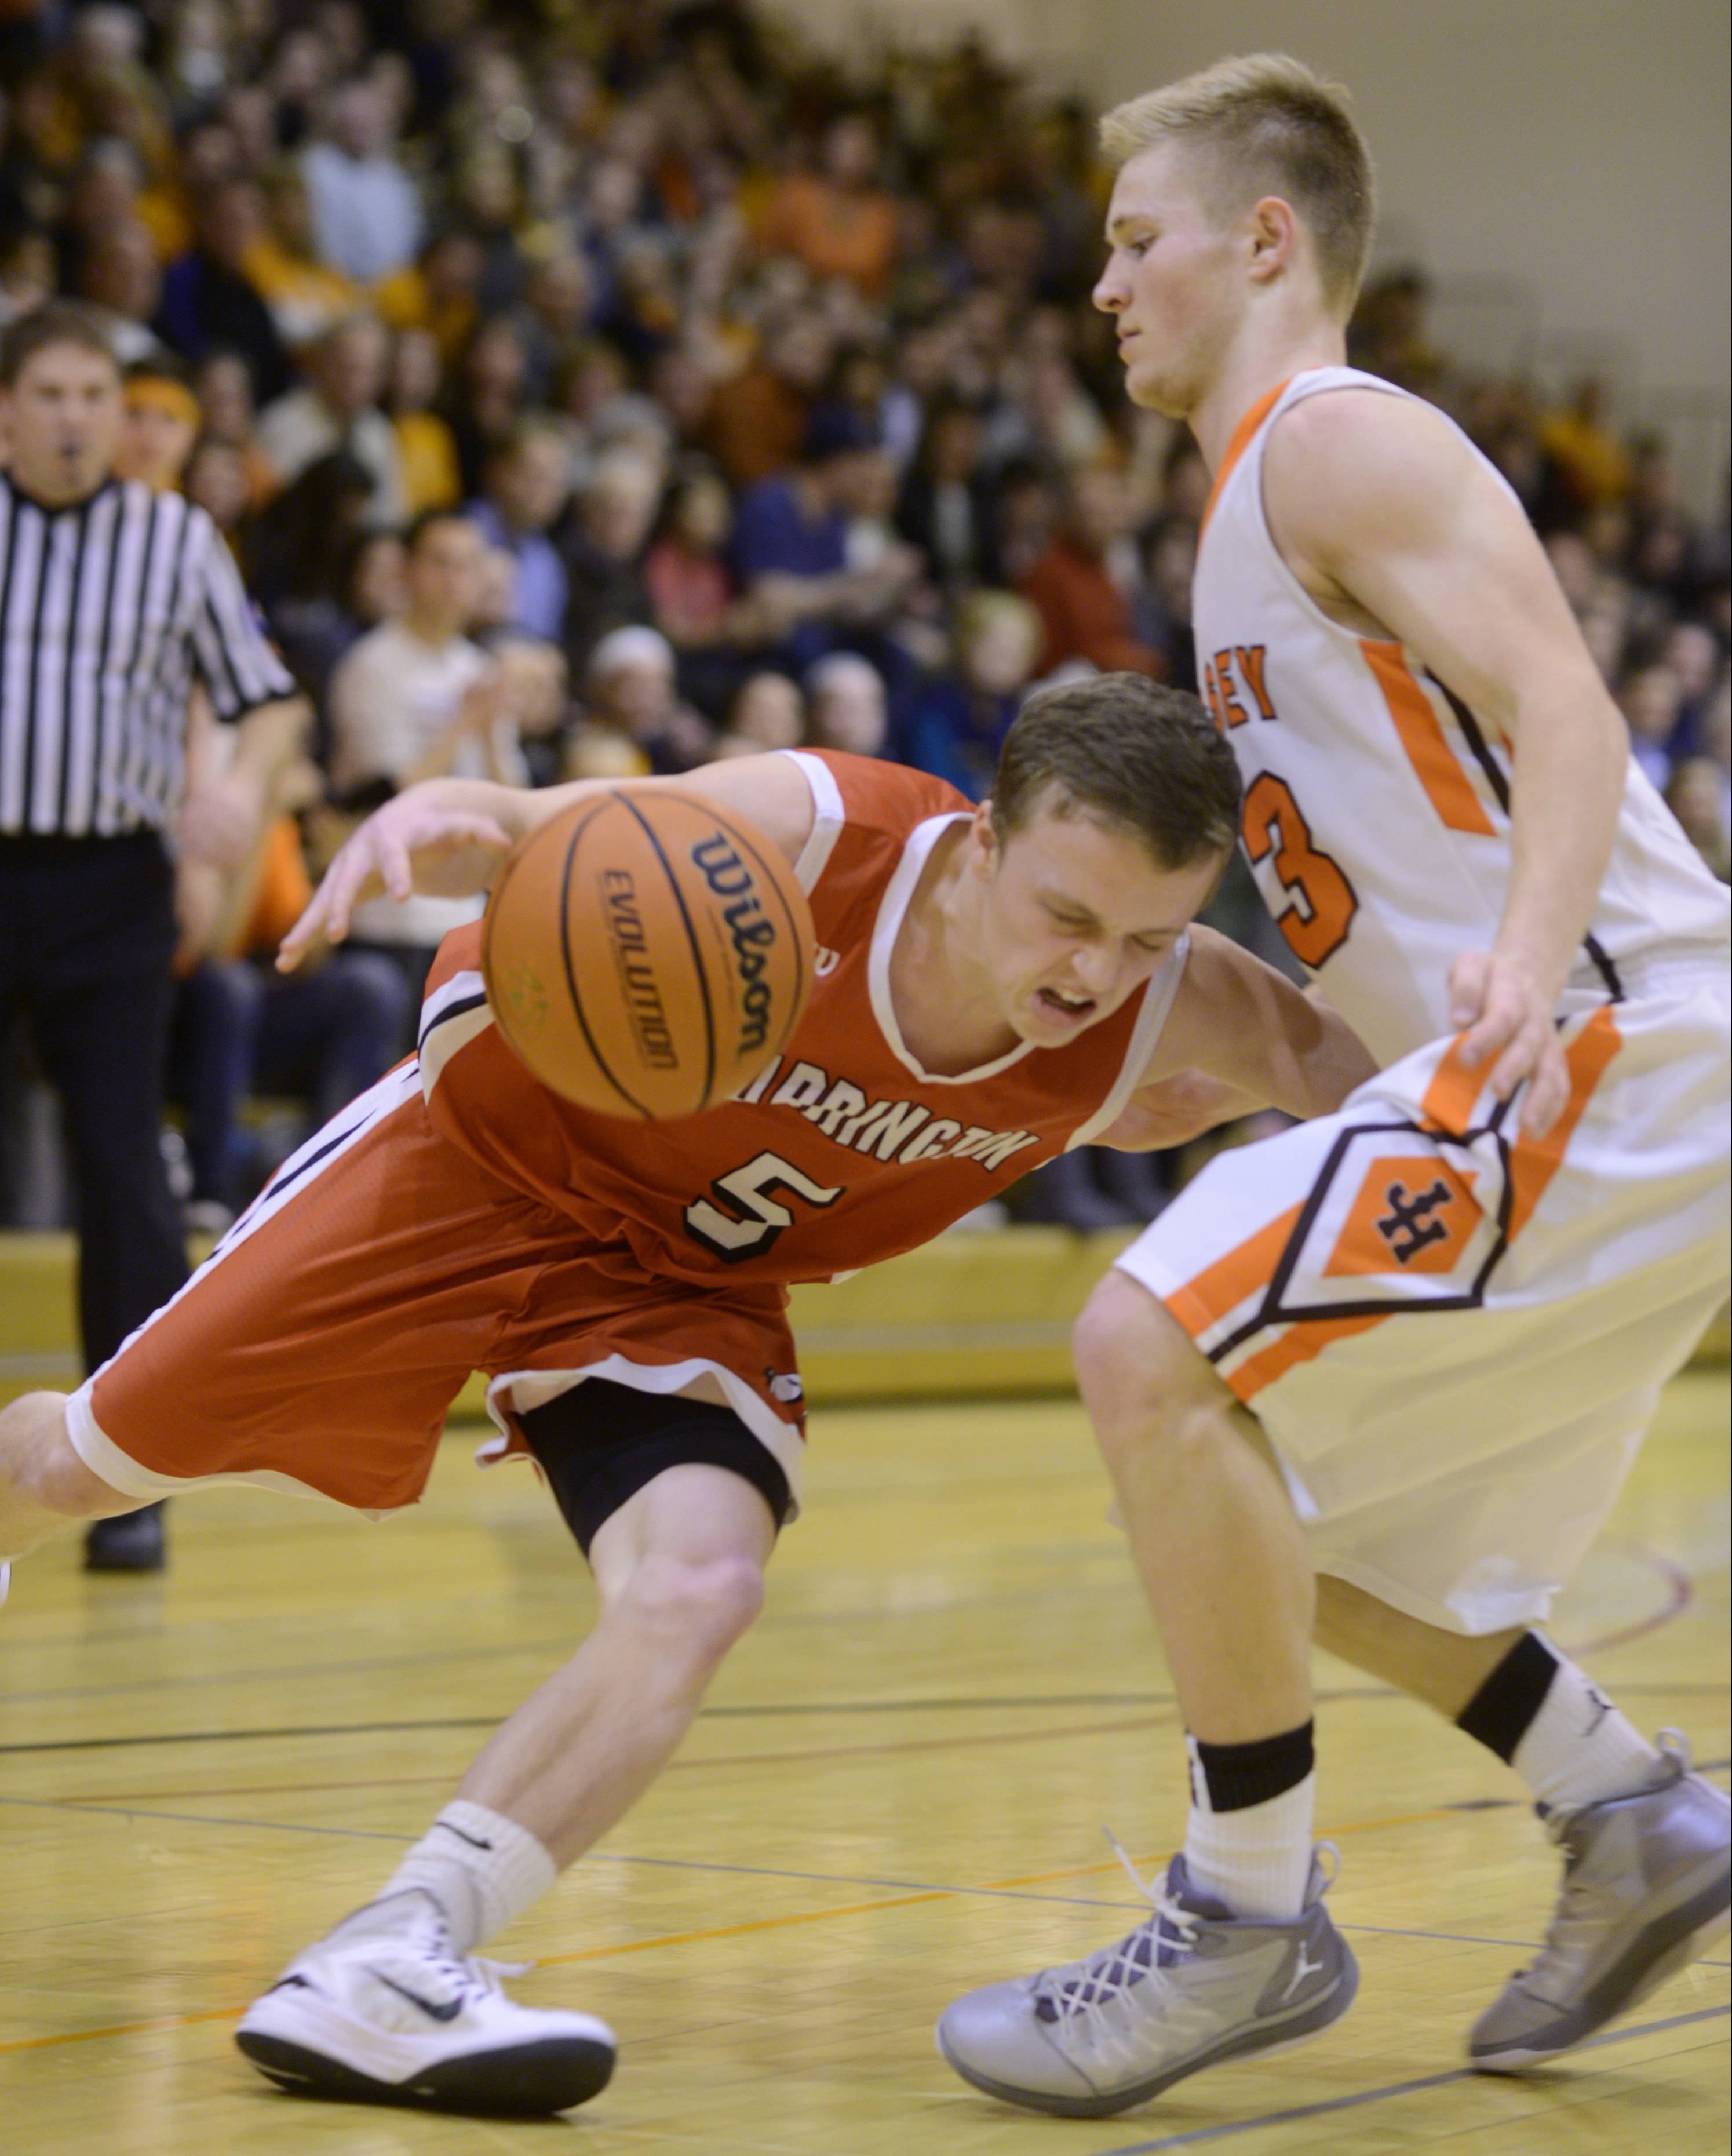 Photos from the Hersey vs. Barrington boys basketball game on Wednesday, Feb. 25.